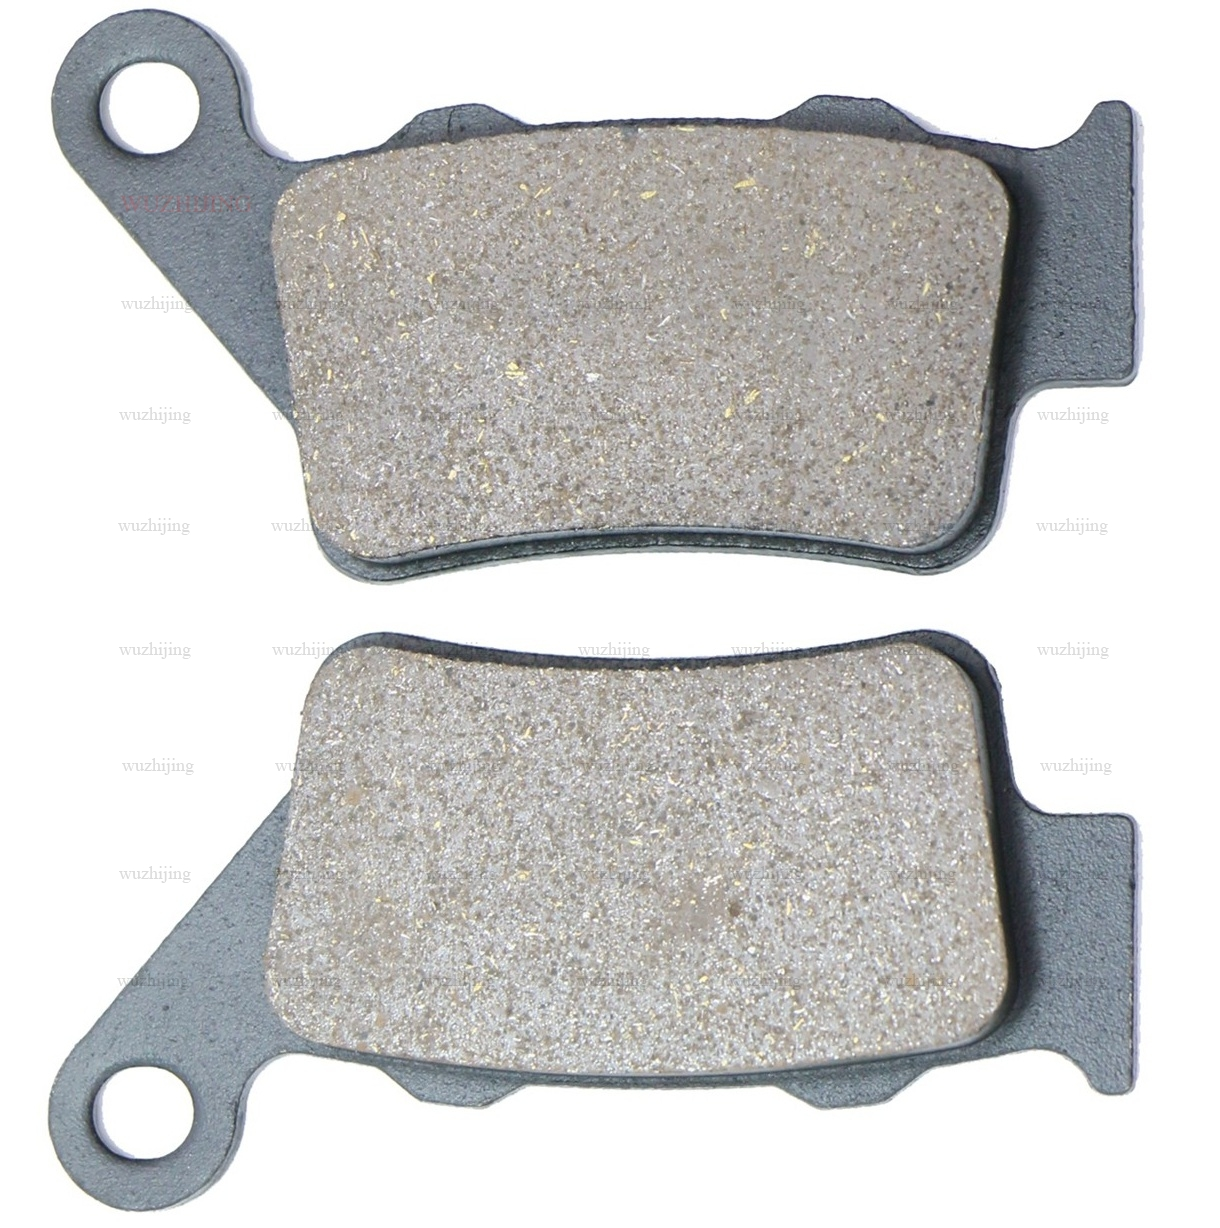 Disc Brake Pads Set for Pegaso 650 Factory (07-10) HUSABERG FS 450 650 C E (06-07)